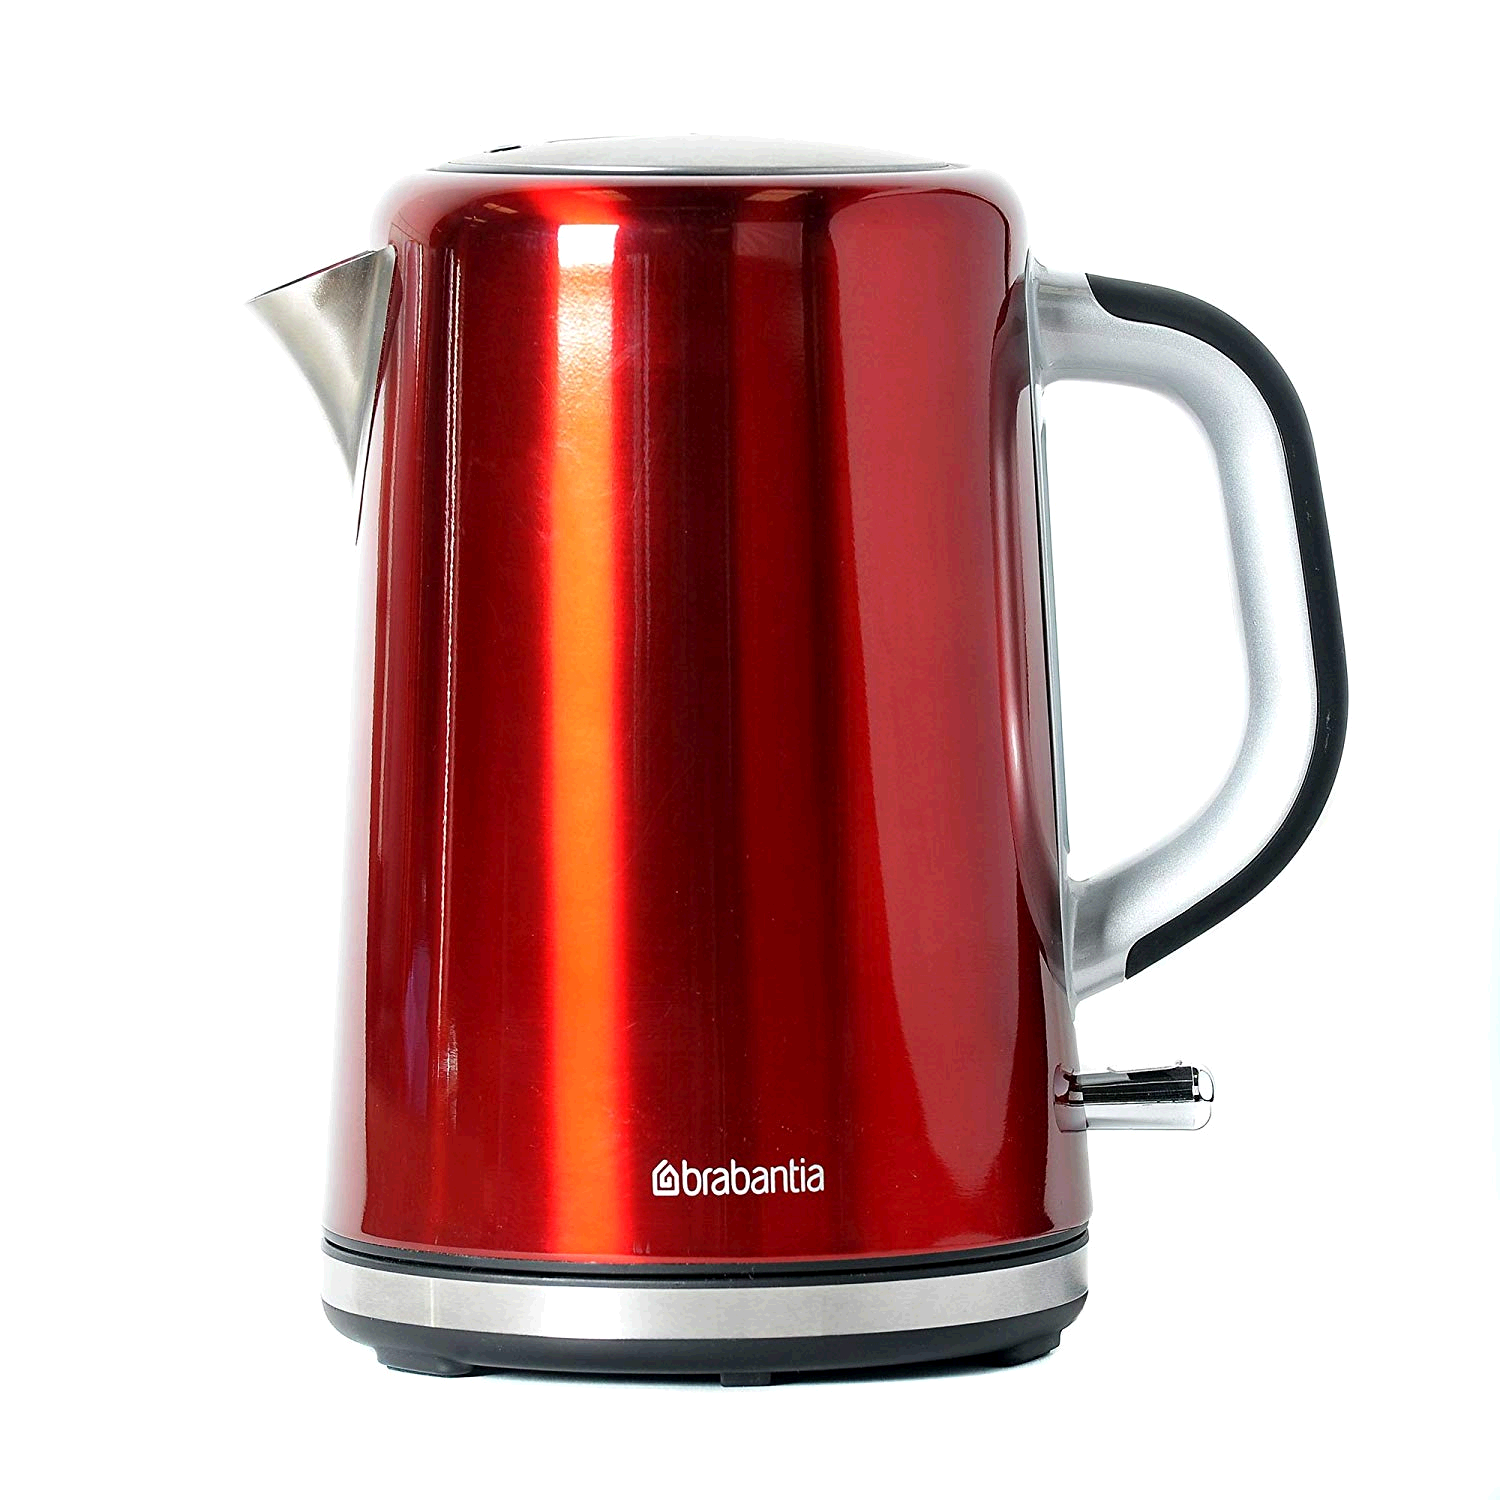 Brabantia Soft Grip Kettle Brushed Stainless Steel Red 1.7ltr